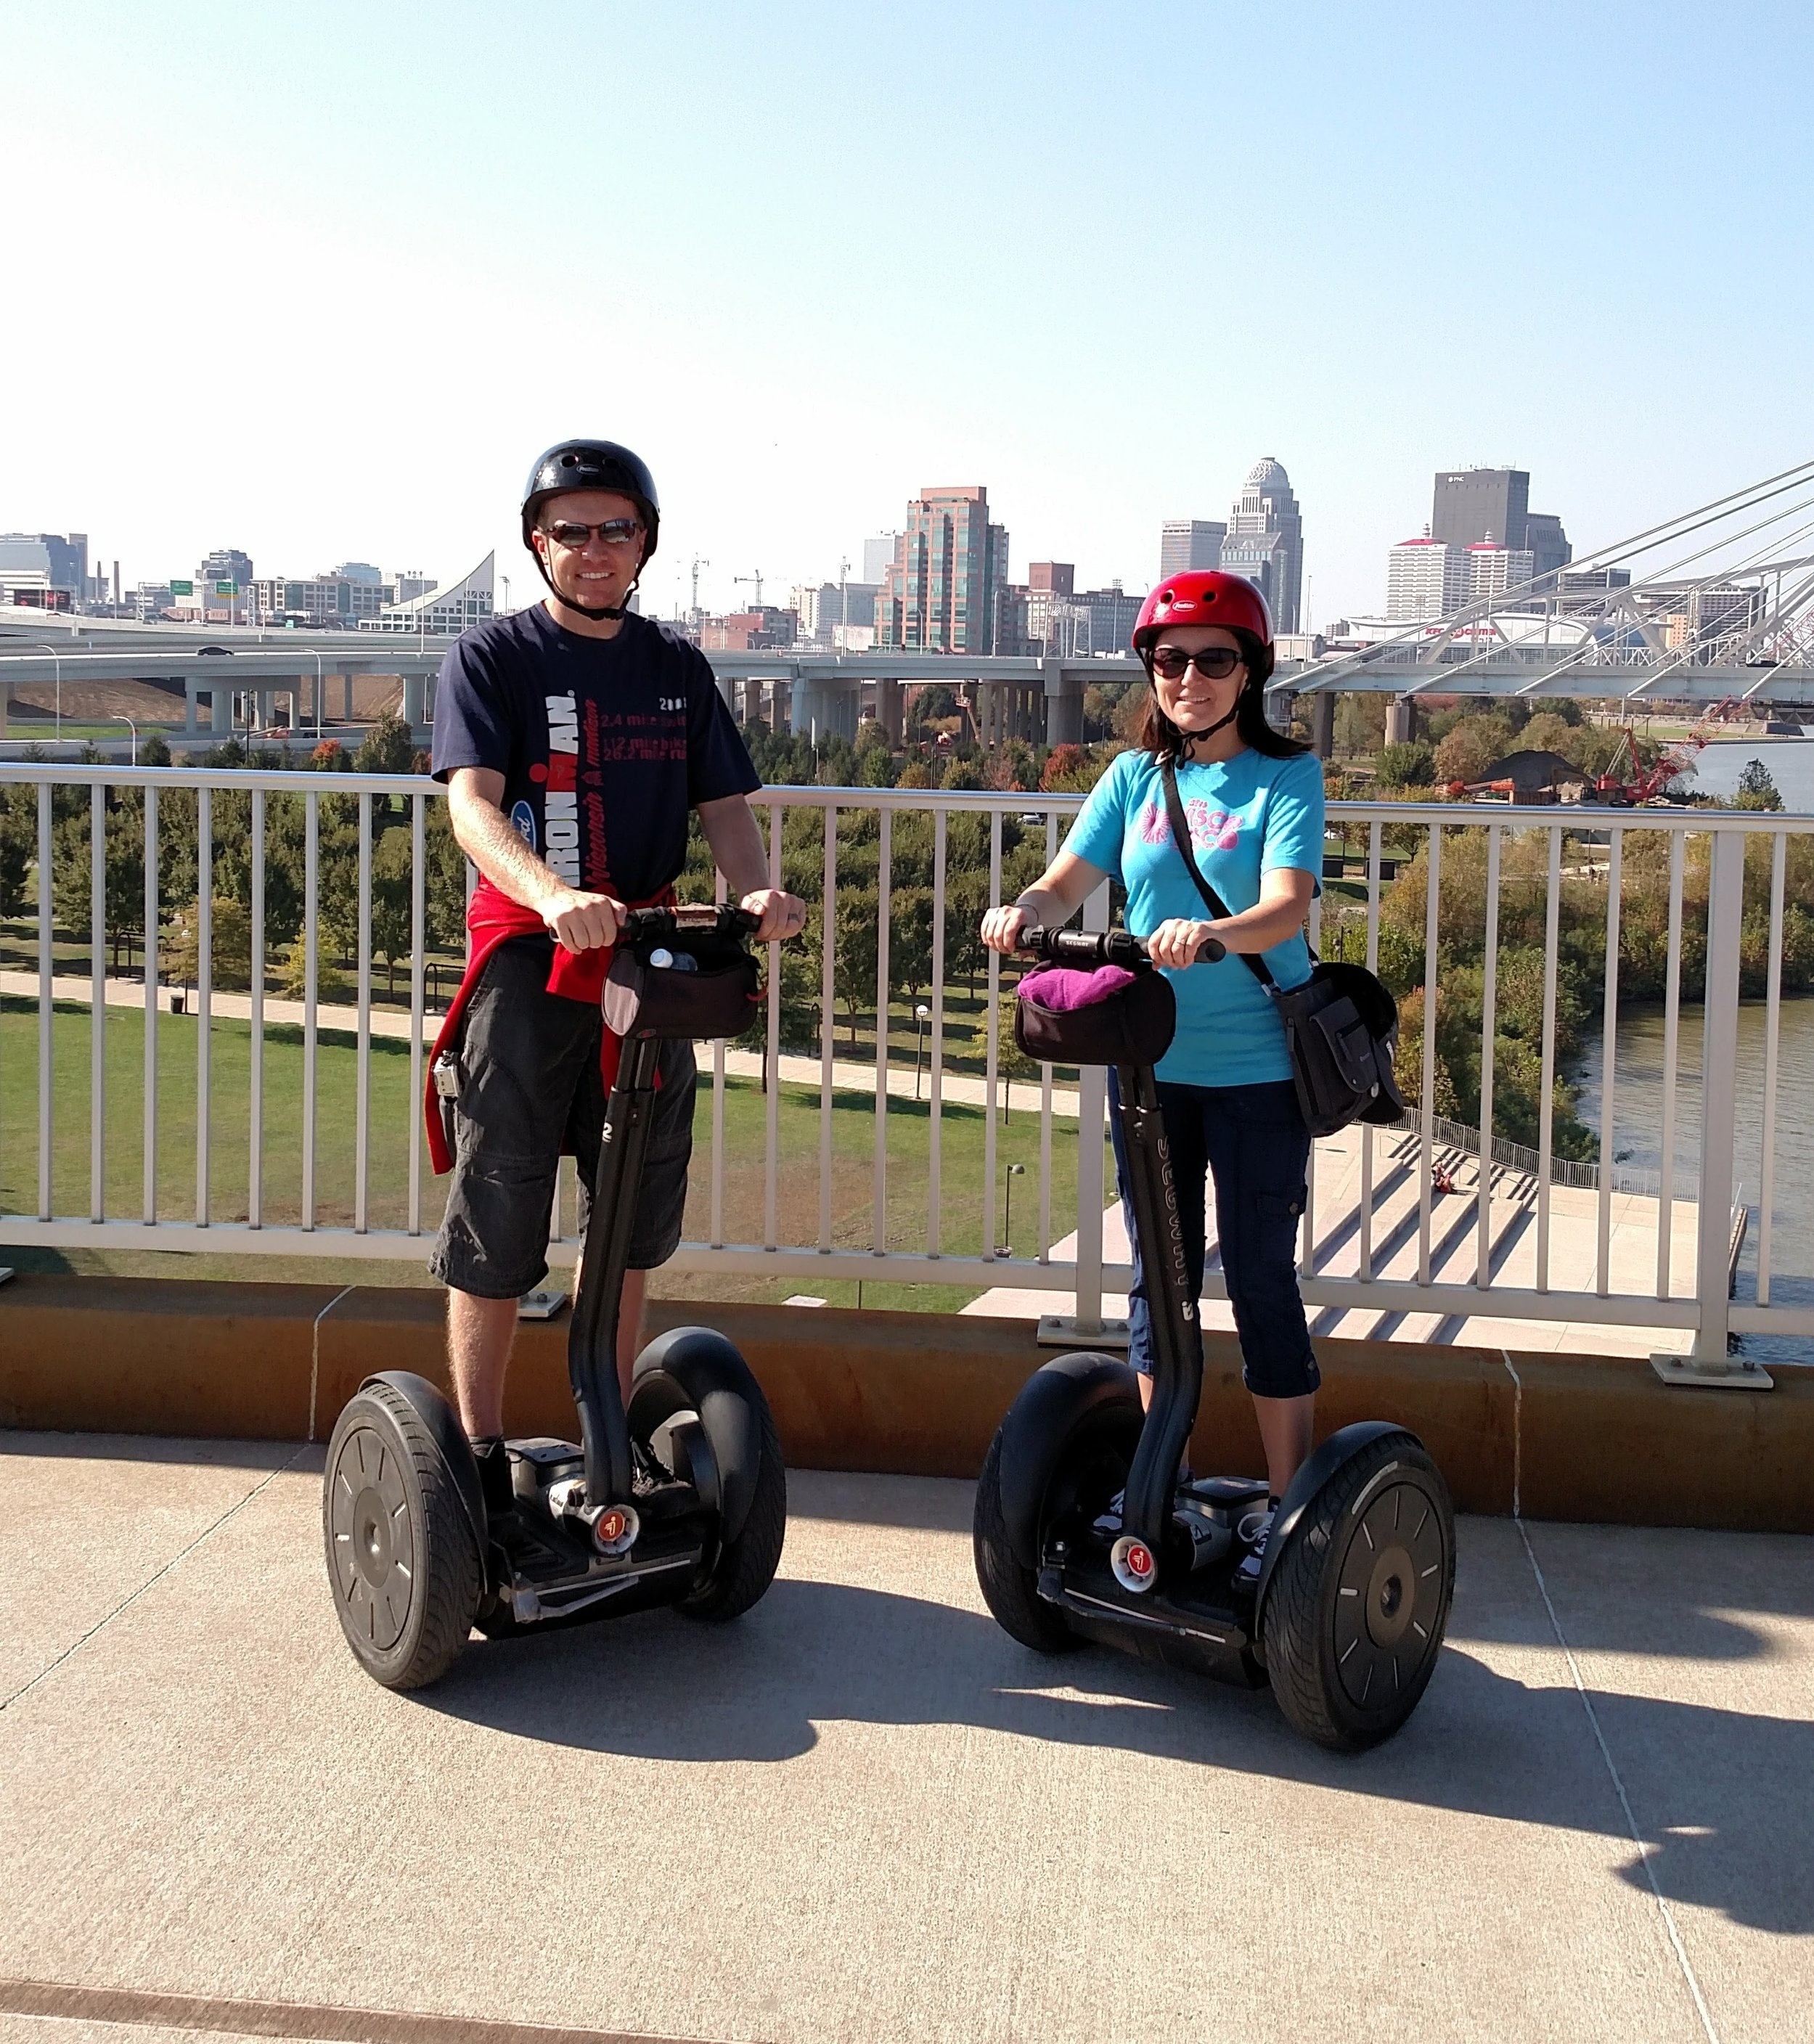 segway tour in louisville, ky